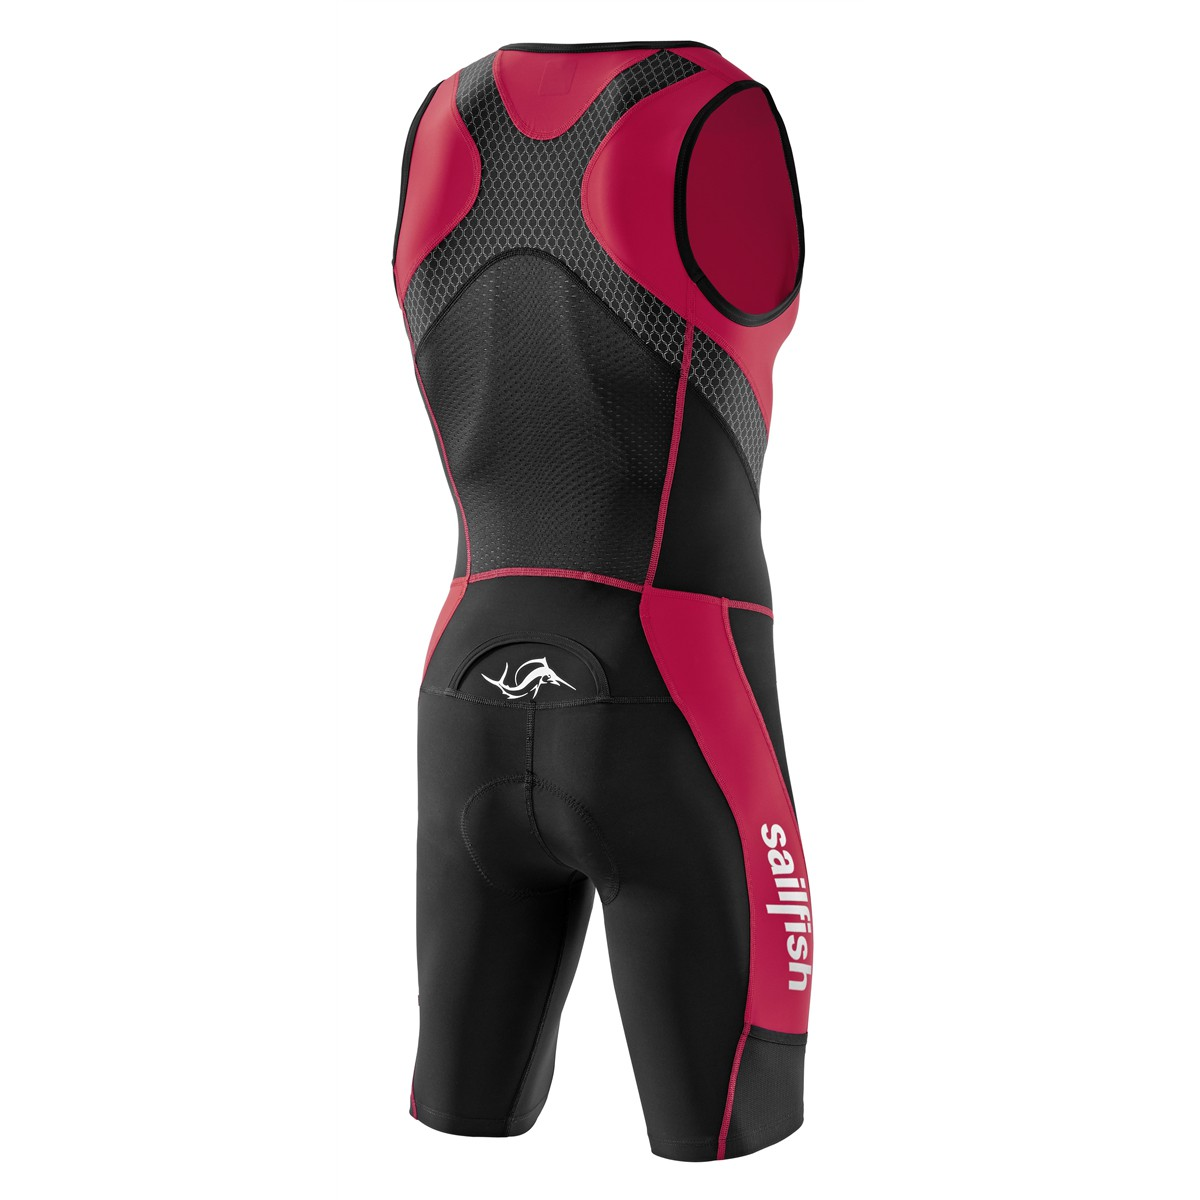 Sailfish Mens Trisuit Comp - Triathlonanzug Herren